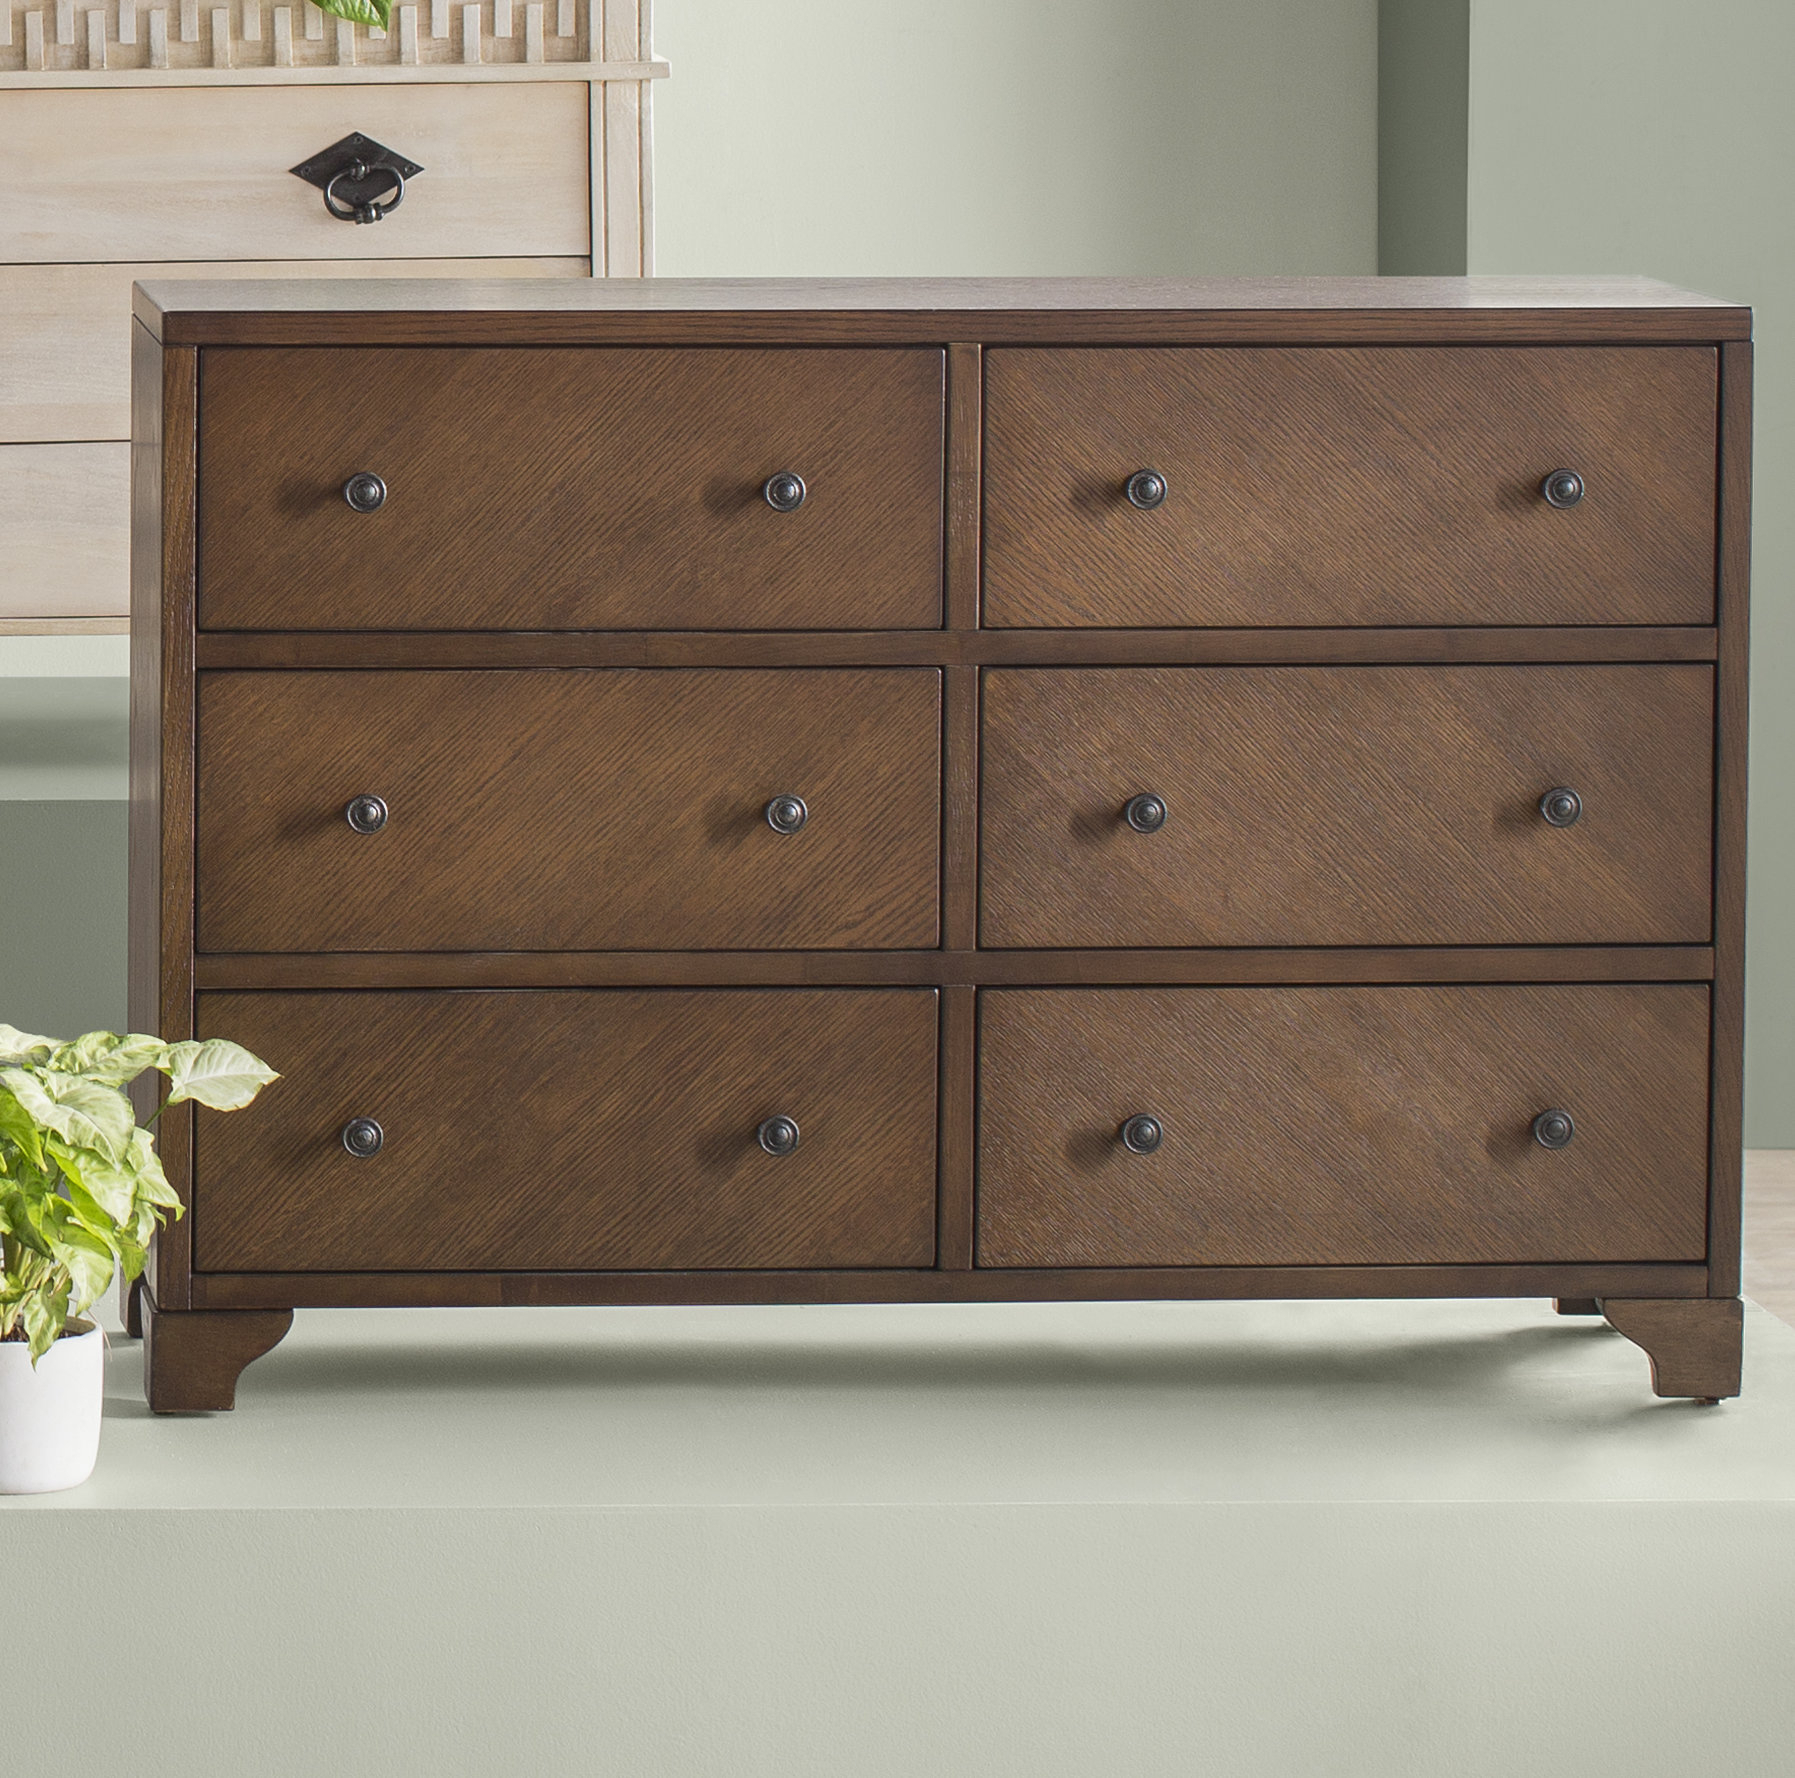 Naylor Sideboard Throughout Most Current Gosport Sideboards (View 14 of 20)